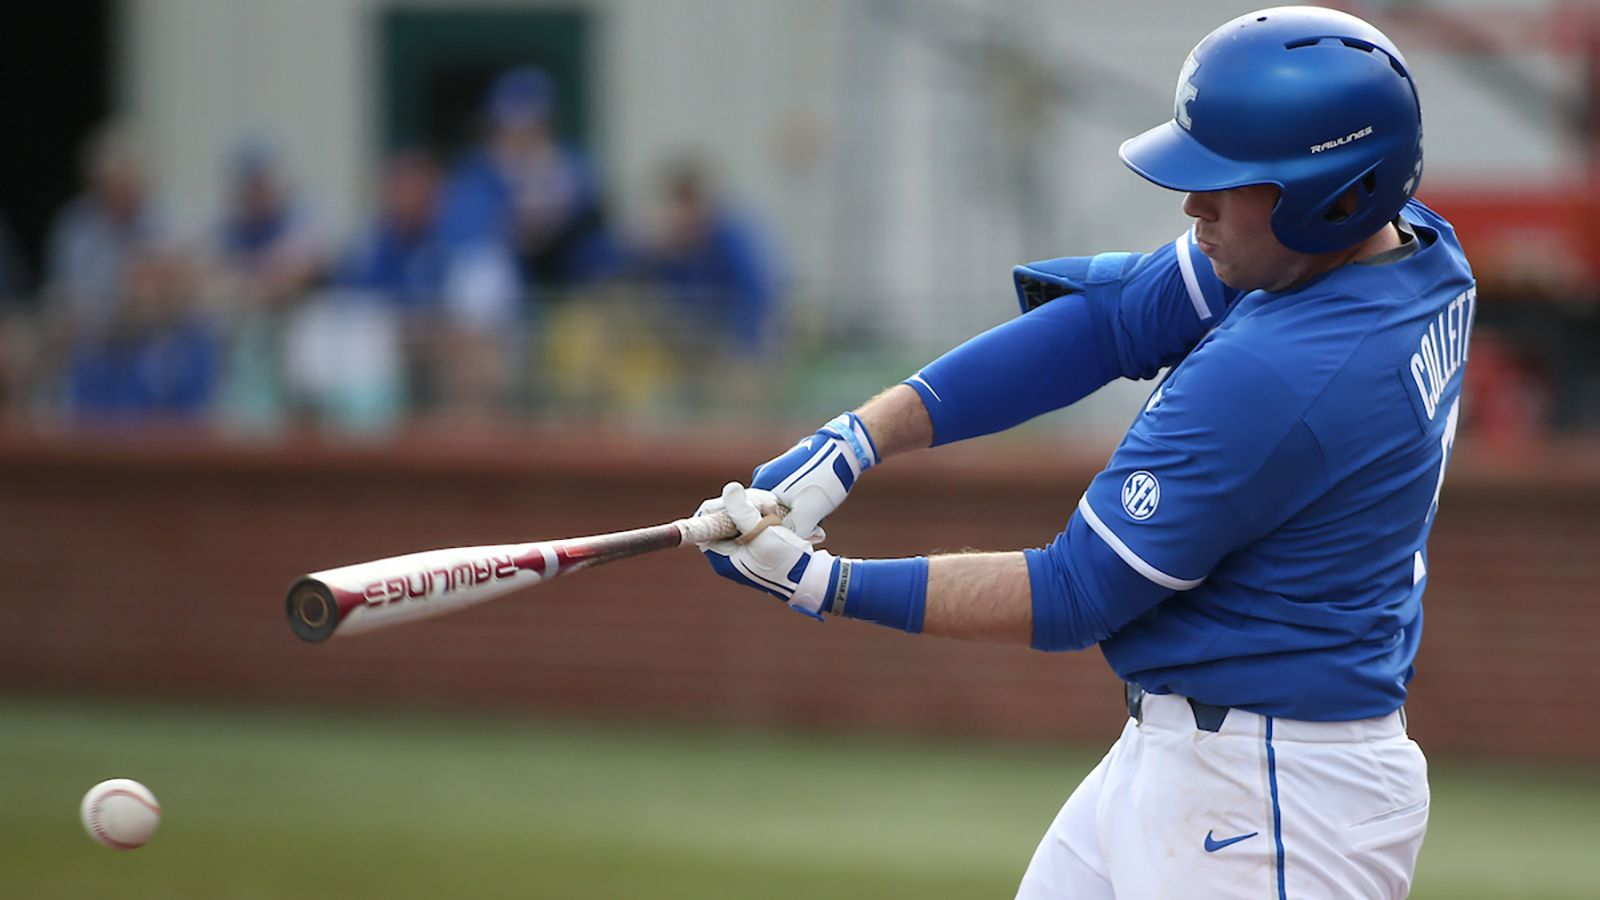 Collett propels No. 8 UK to win over Oakland